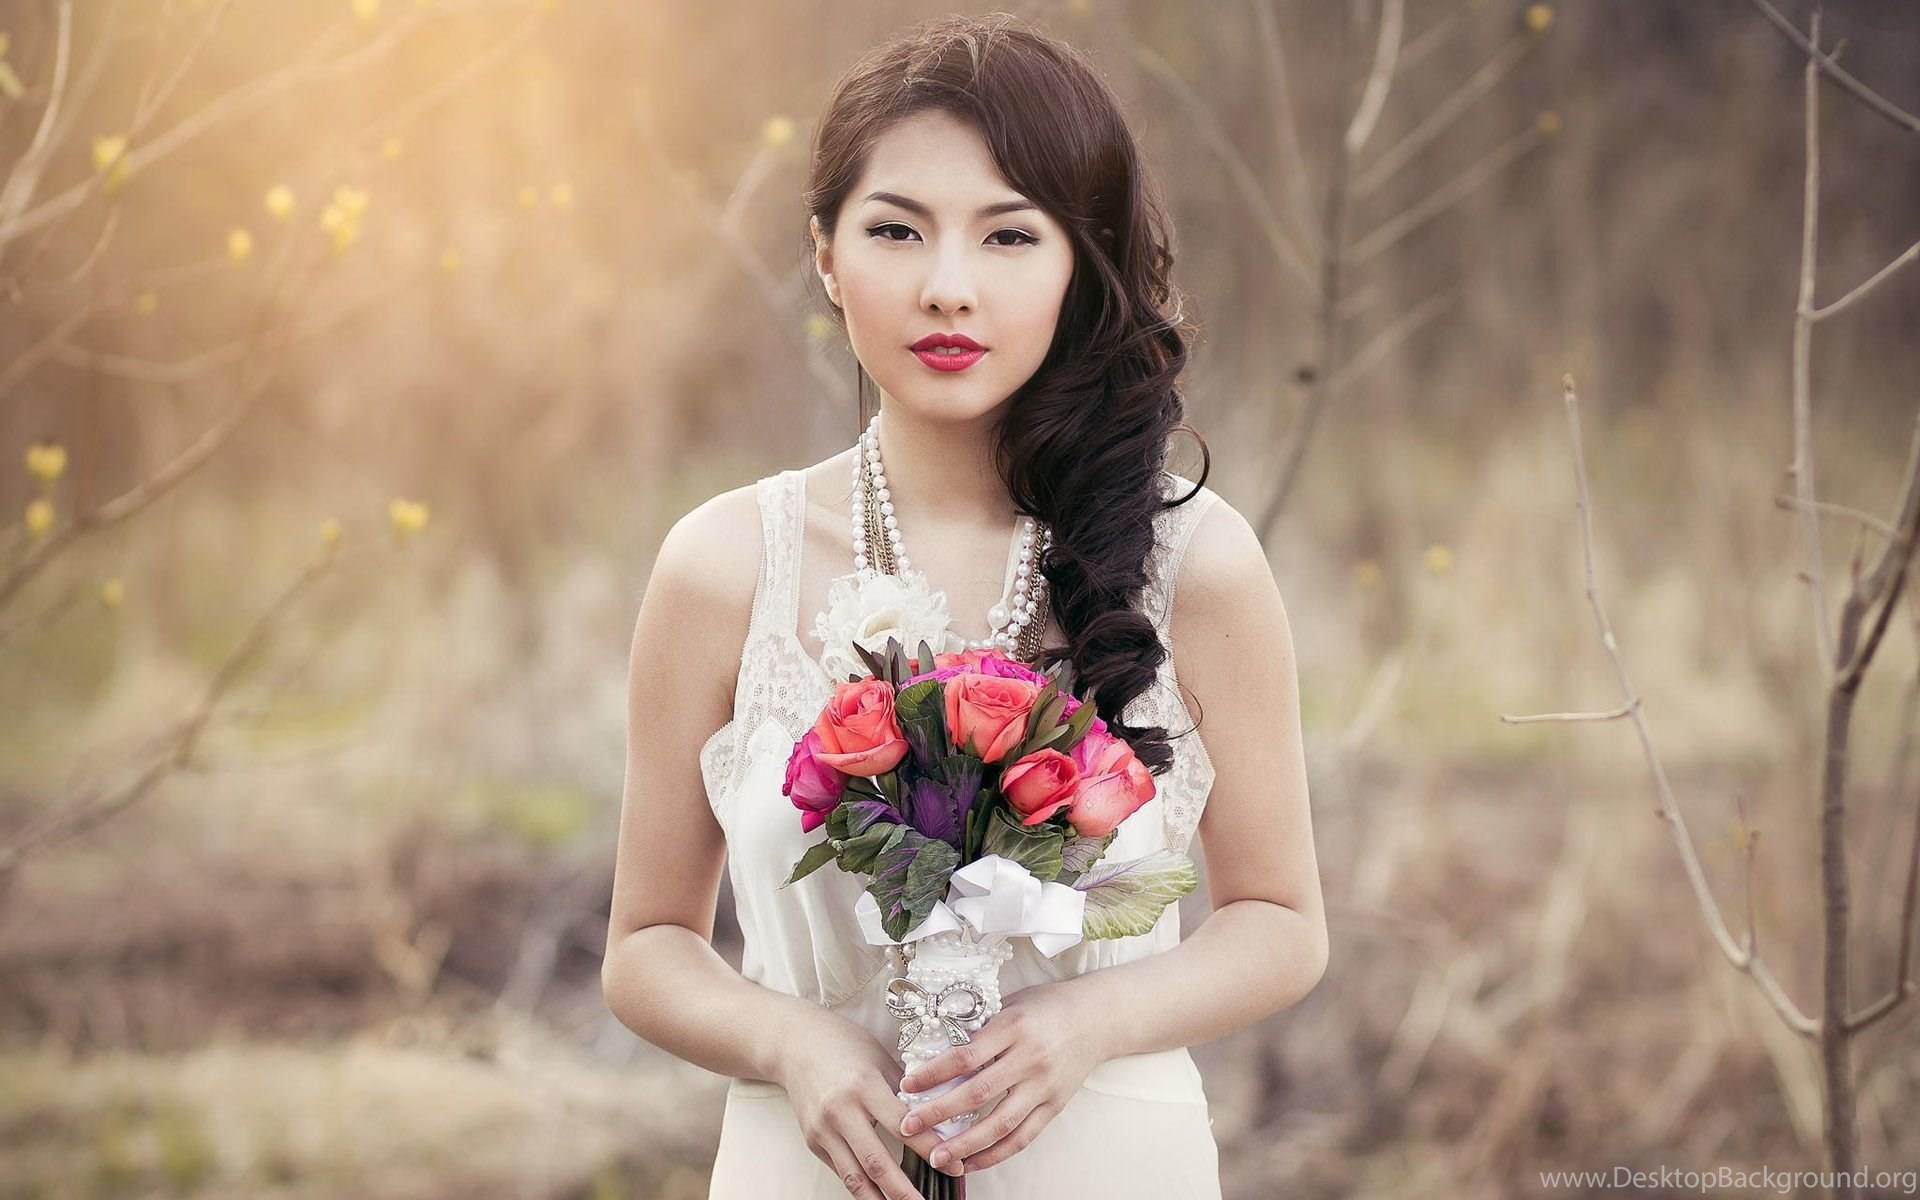 Pin on beautiful asian women searching for love